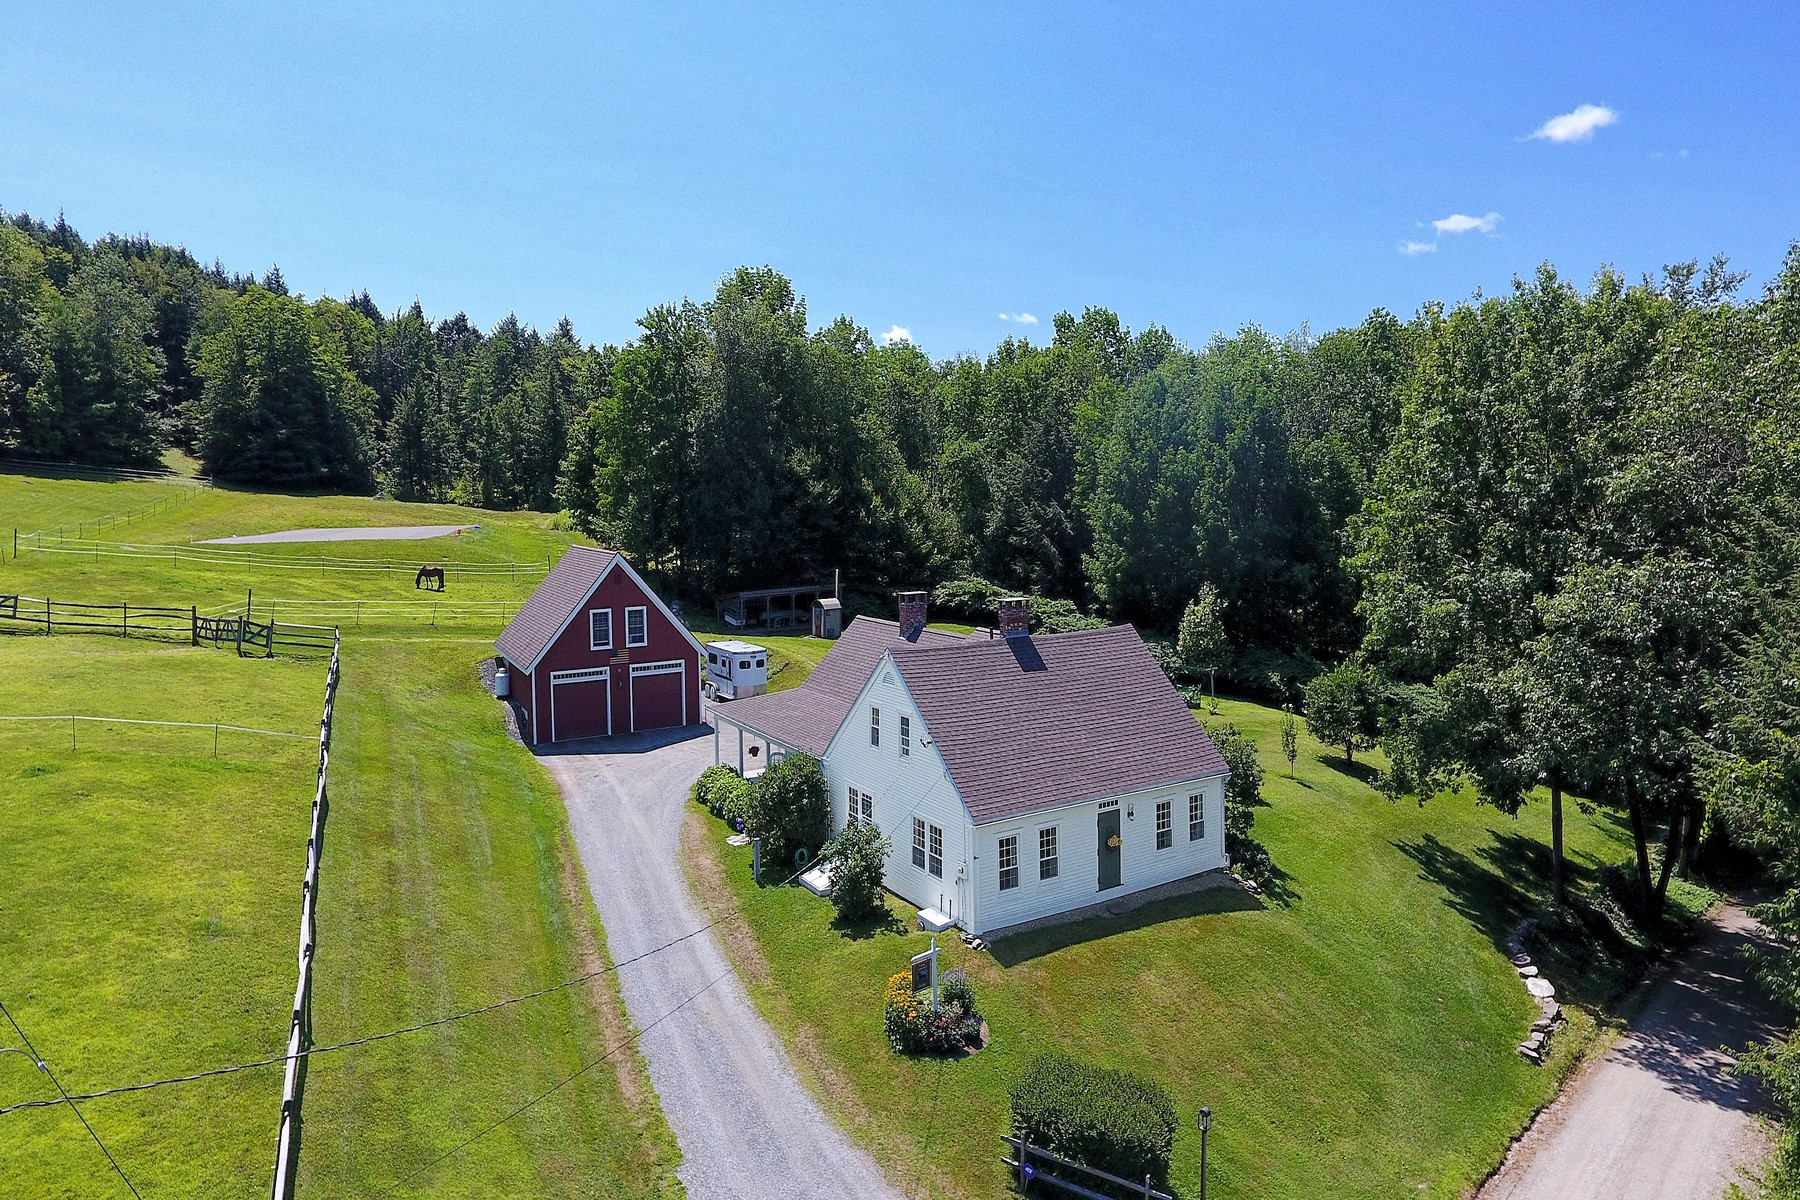 Single Family Homes for Sale at Restored 1810 Cape Style Farm House 806 Breezy Hill Rd Springfield, Vermont 05156 United States